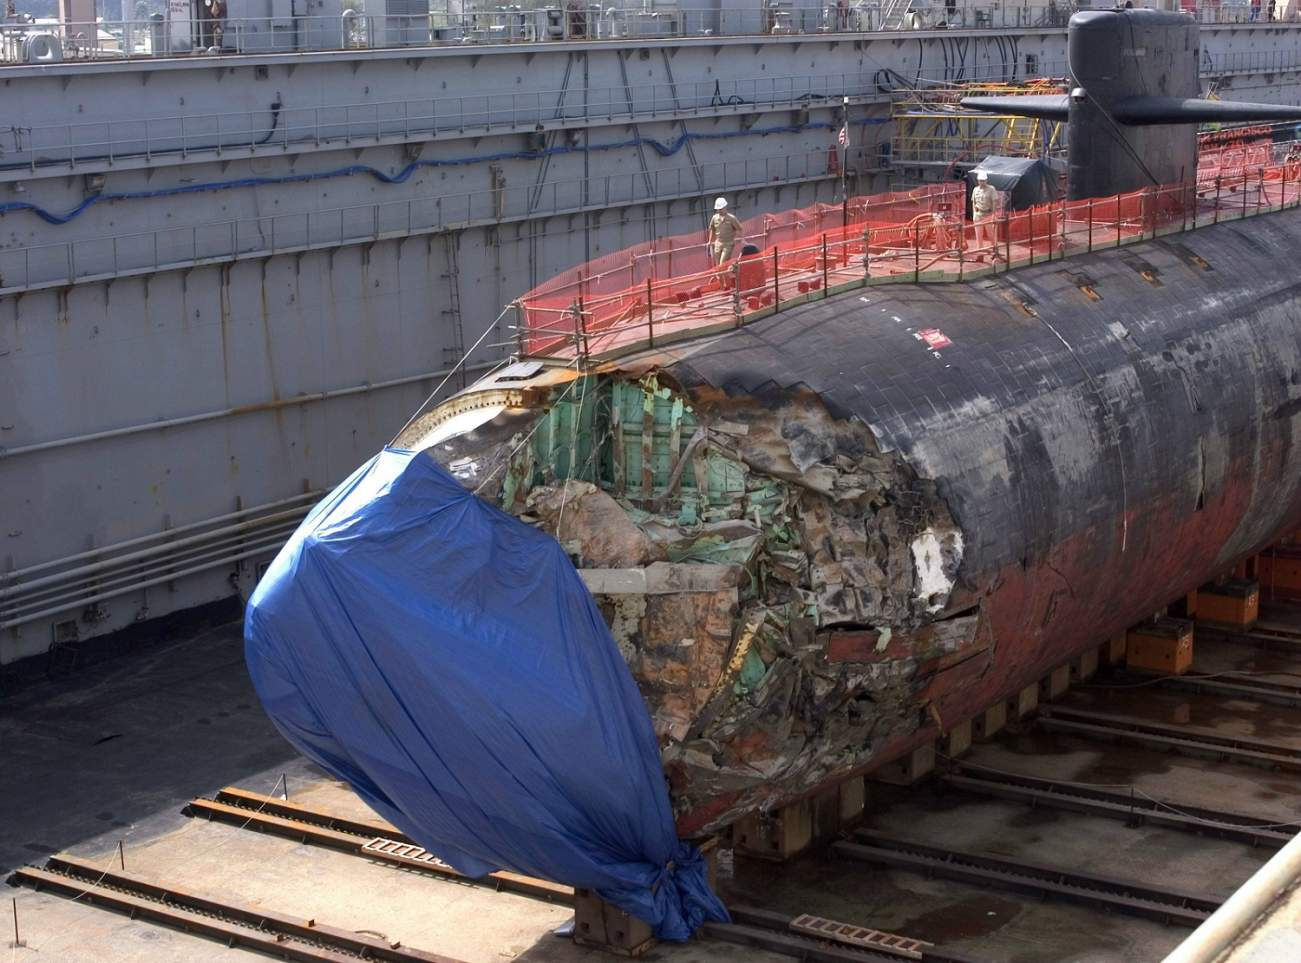 This Pictures Proves 1 Fact: It's Really Hard to Sink a U.S. Navy Submarine